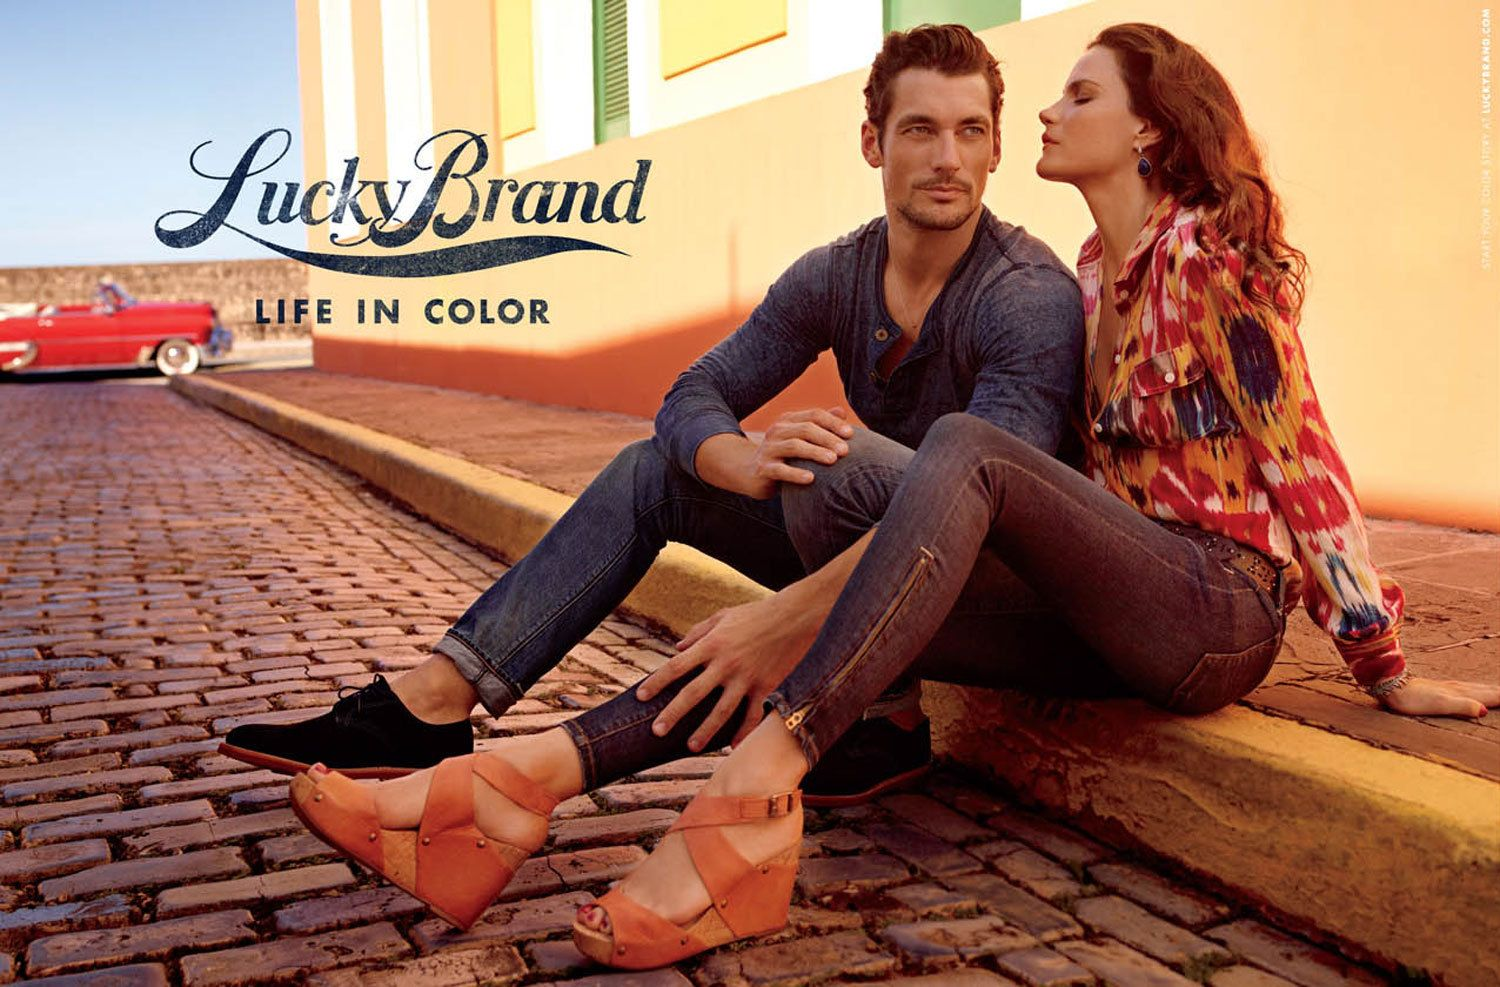 1luck_brand_ad_campaign_summer_2012_0030.jpg